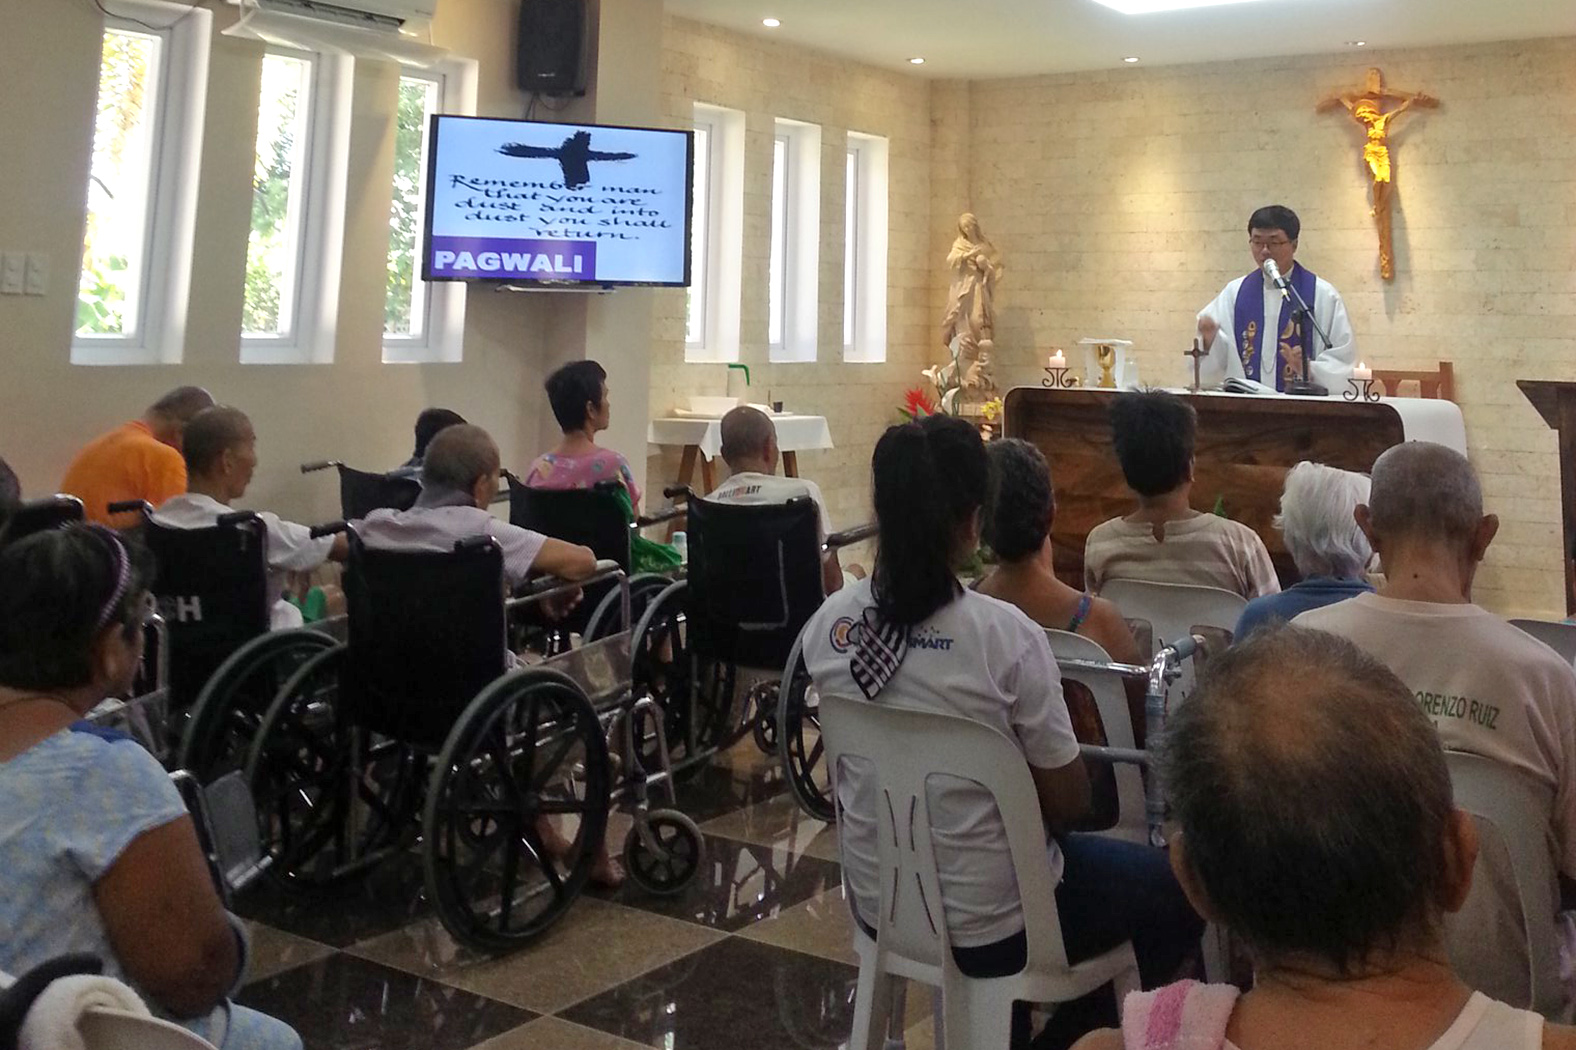 Don't Discard the Elderly, says Bishop in Philippines